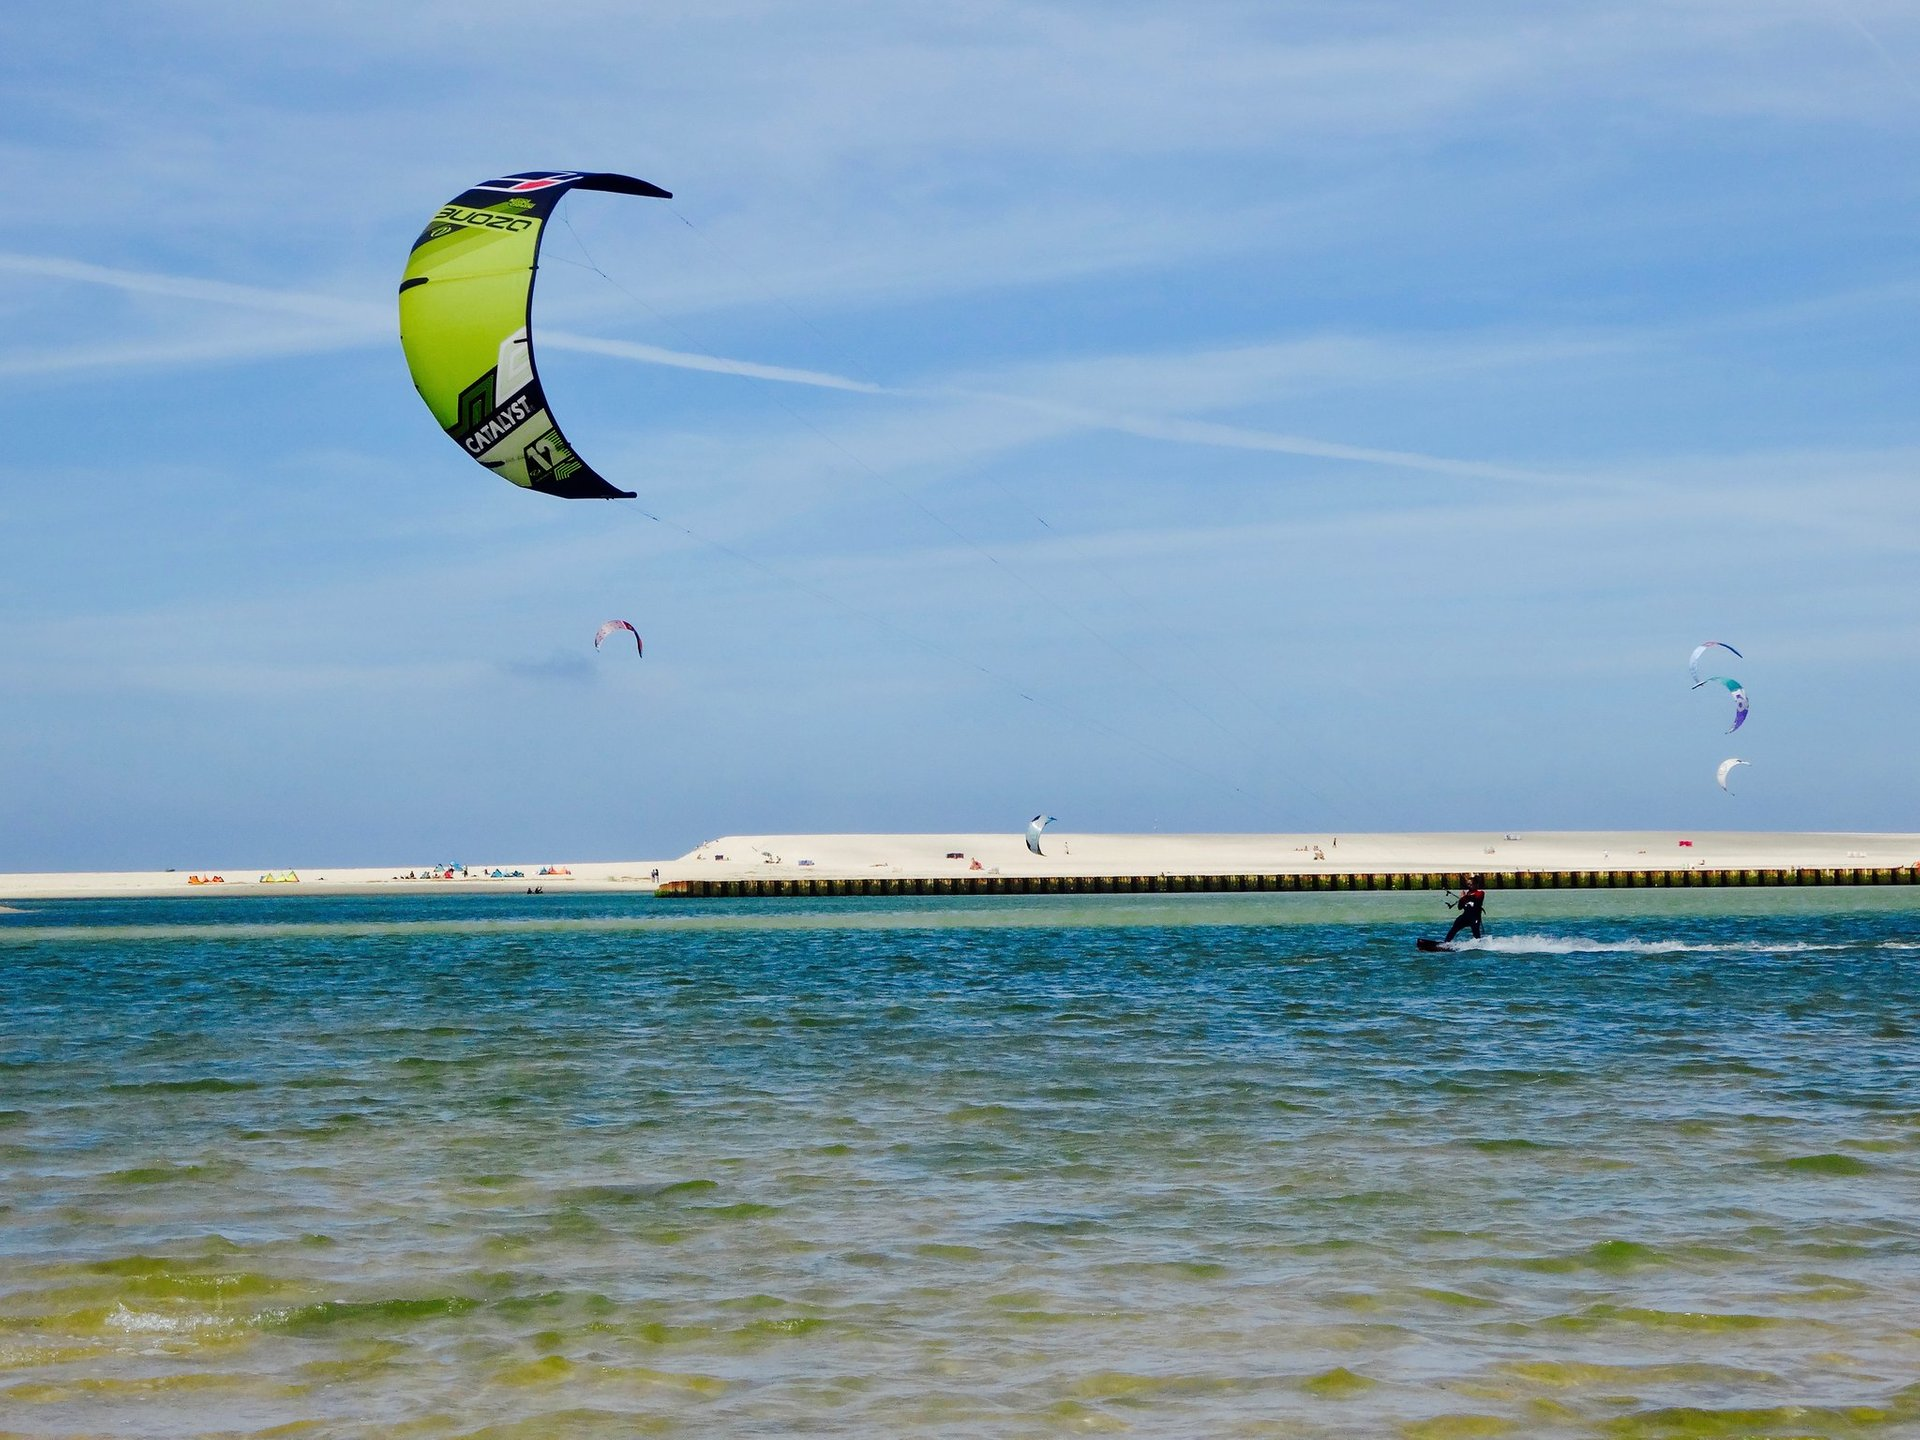 Kitesurfing and Windsurfing in Portugal 2020 - Best Time